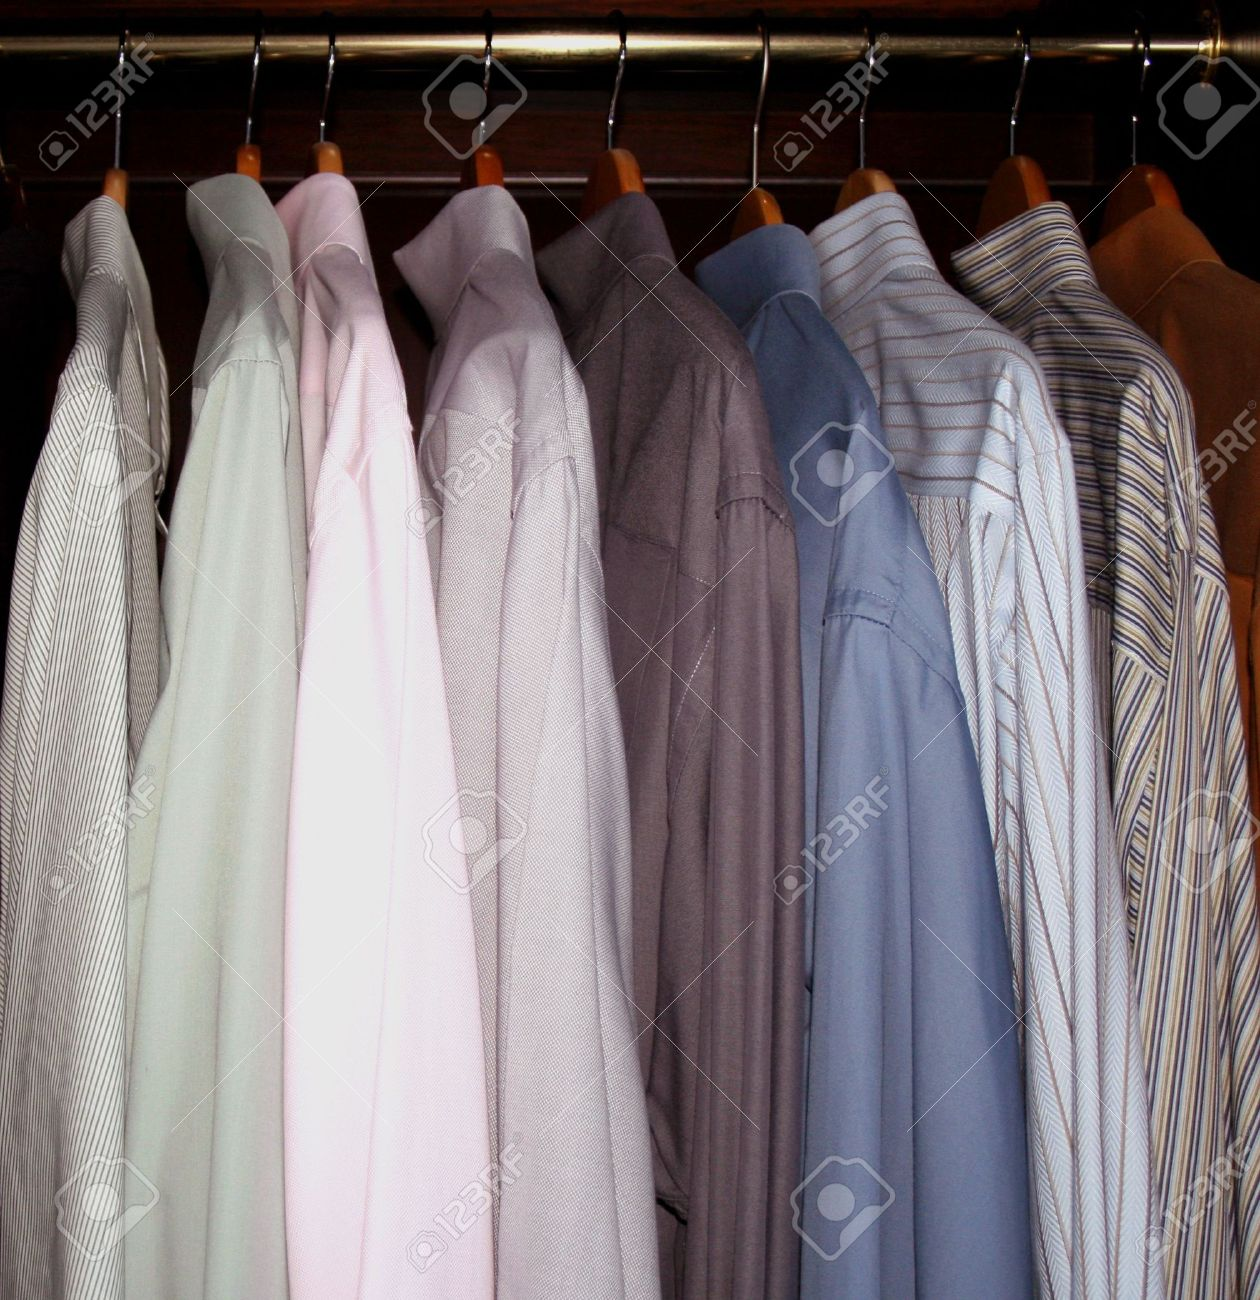 menu0027s dress shirts hanging in wardrobe closet stock photo